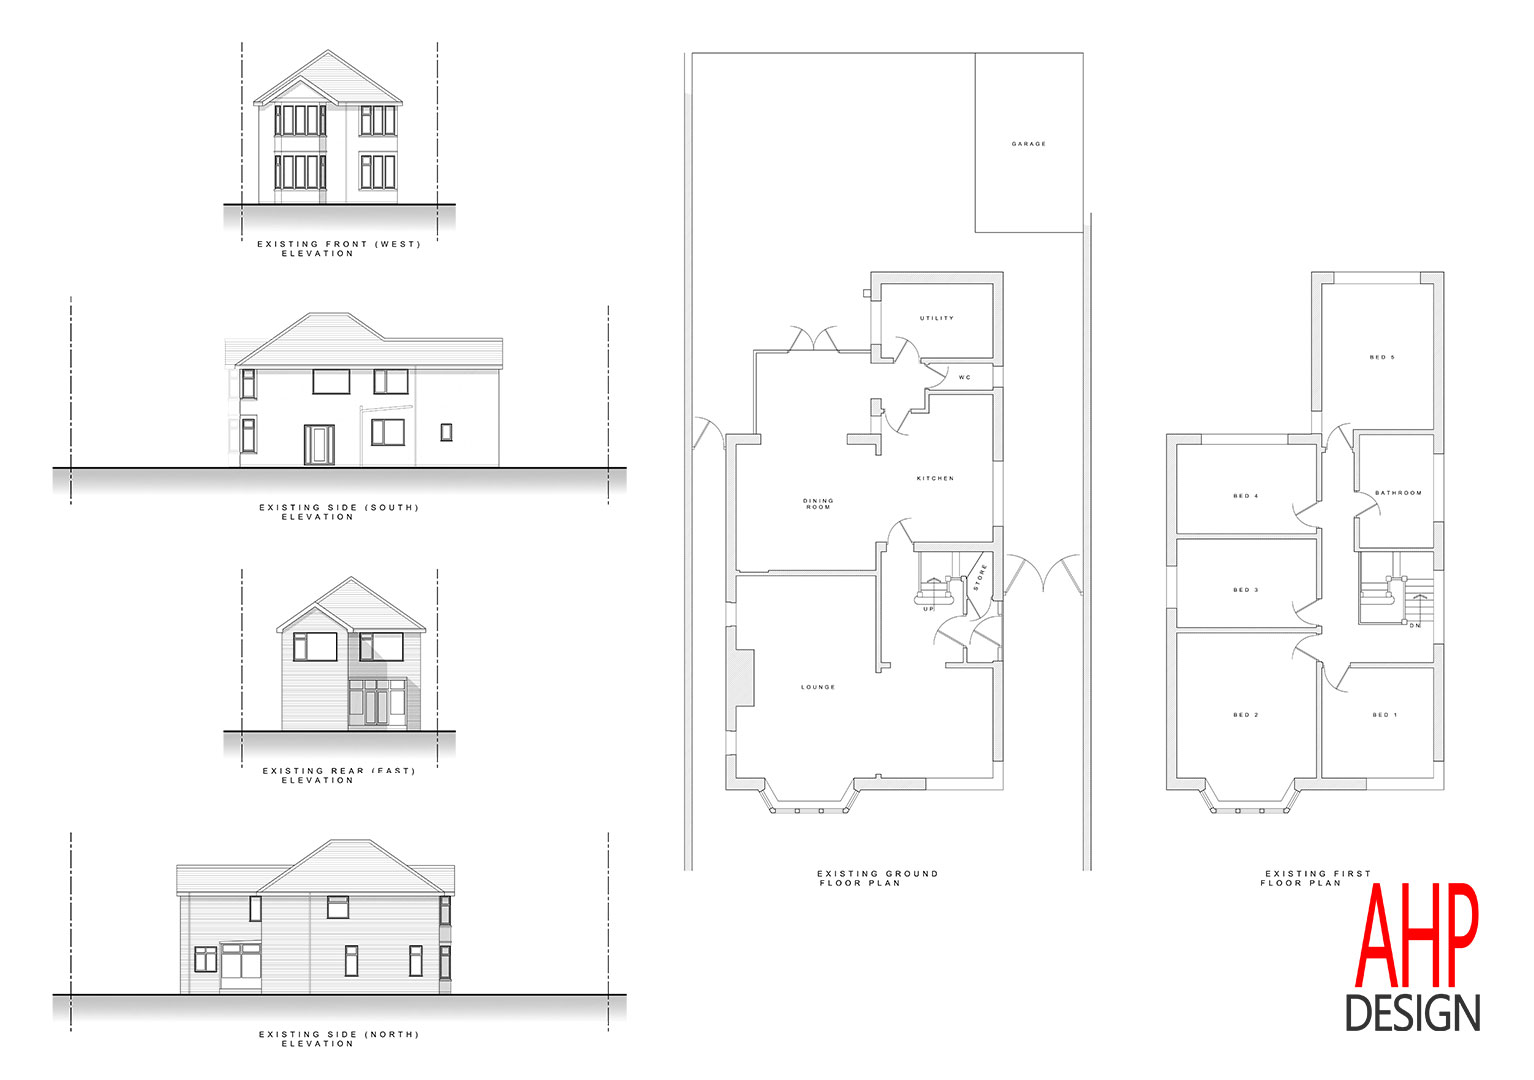 Detached house blackpool existing plans